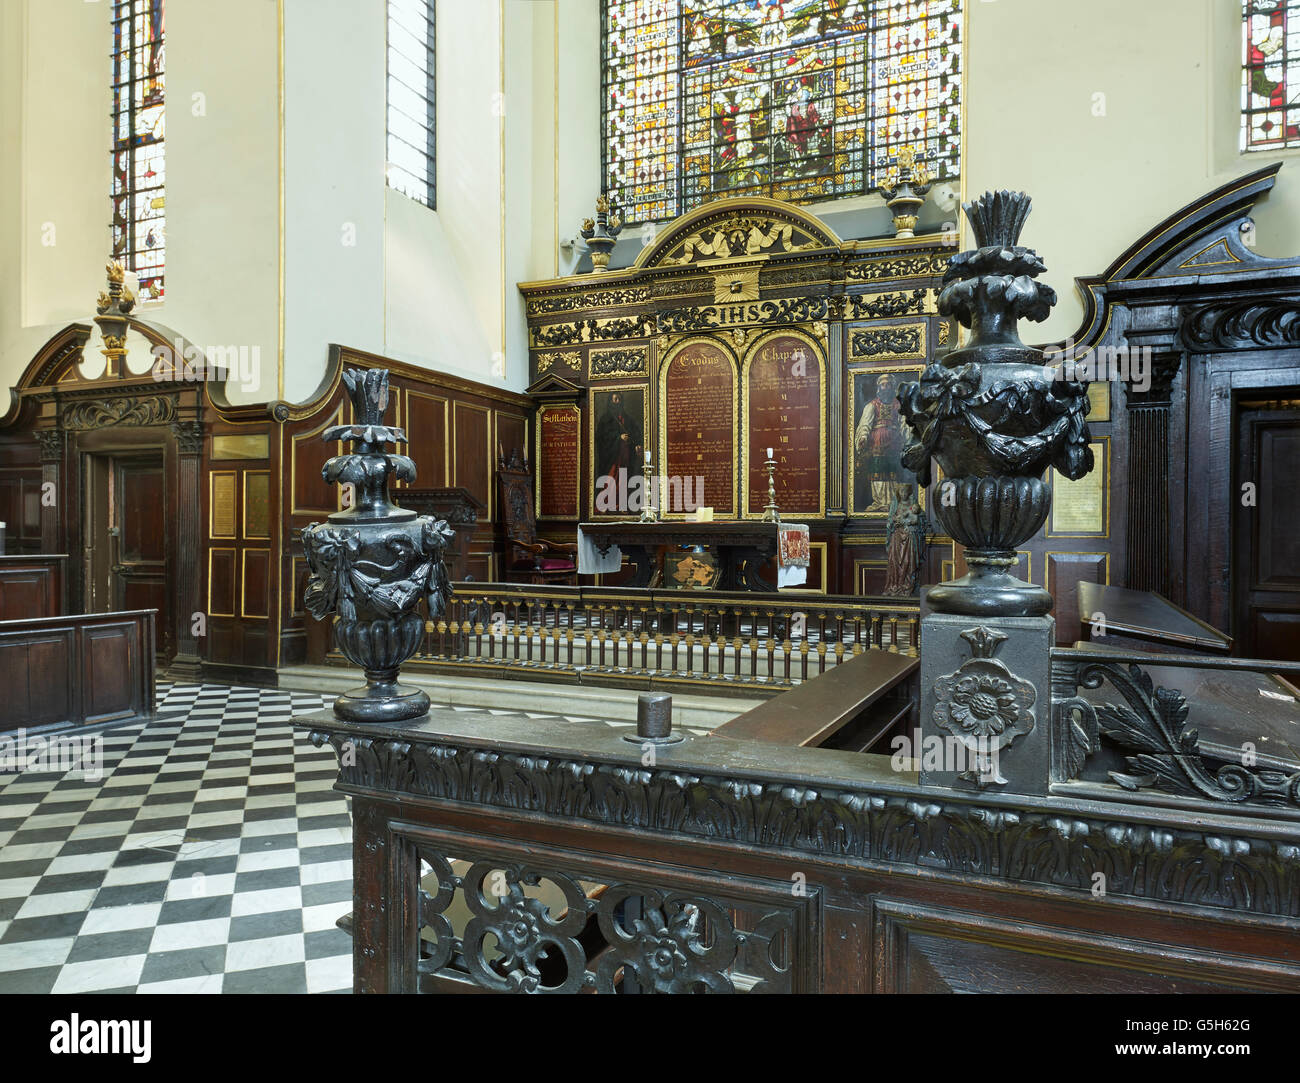 St Edmund King and Martyr, Church in the City of London, interior - Stock Image